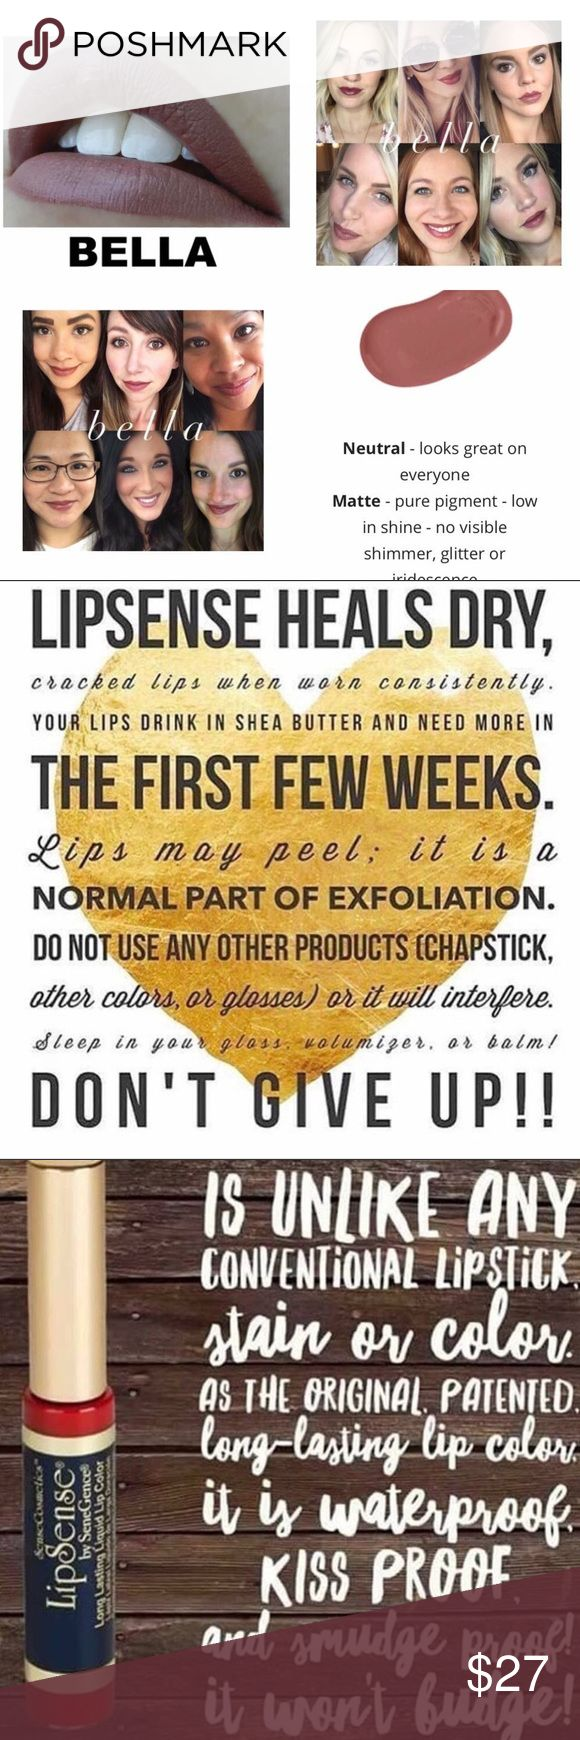 Bella LipSense- 3 left! 💋What is LipSense?.... LipSense is a long lasting color stay lip color. Not to be confused with a stain. It's patented technology forms a molecular bond to your lips making it last up to 18 hours. LipSense is waterproof, smudge proof and kiss proof.                            👉🏽For first time users, it's recommended to purchase a starter kit (color, gloss, oops remover) I have each posted so if you need a starter kit, just create a bundle LipSense Makeup Lipstick